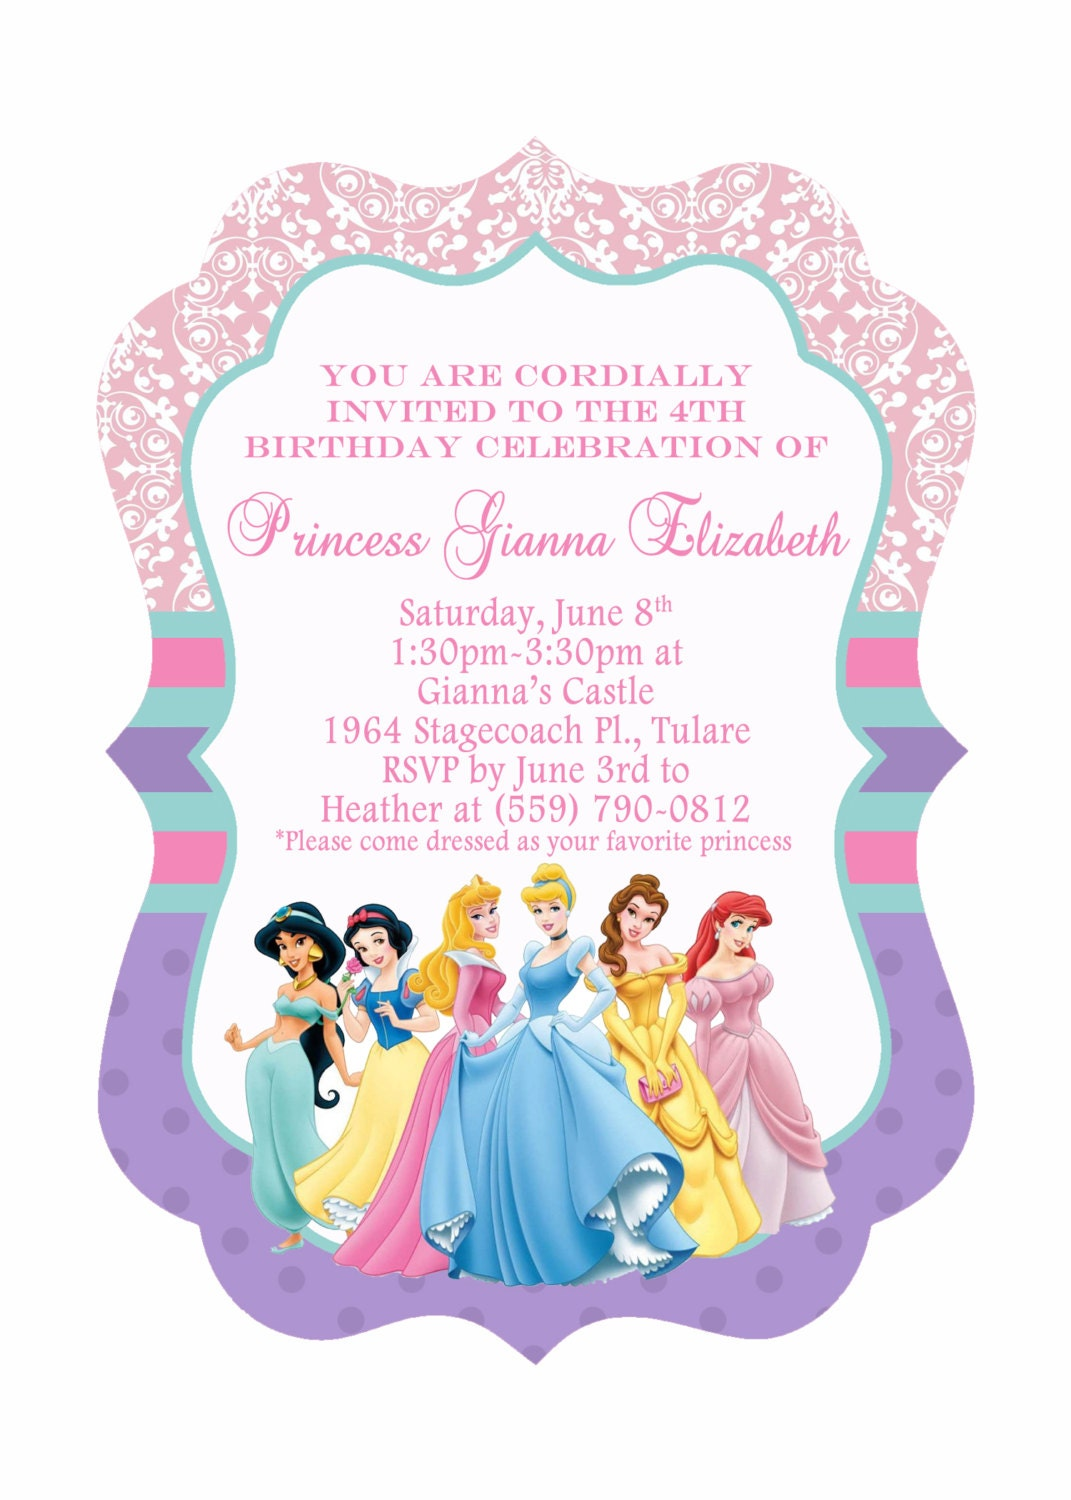 Cinderella Sweet 16 Invitations is beautiful invitations example